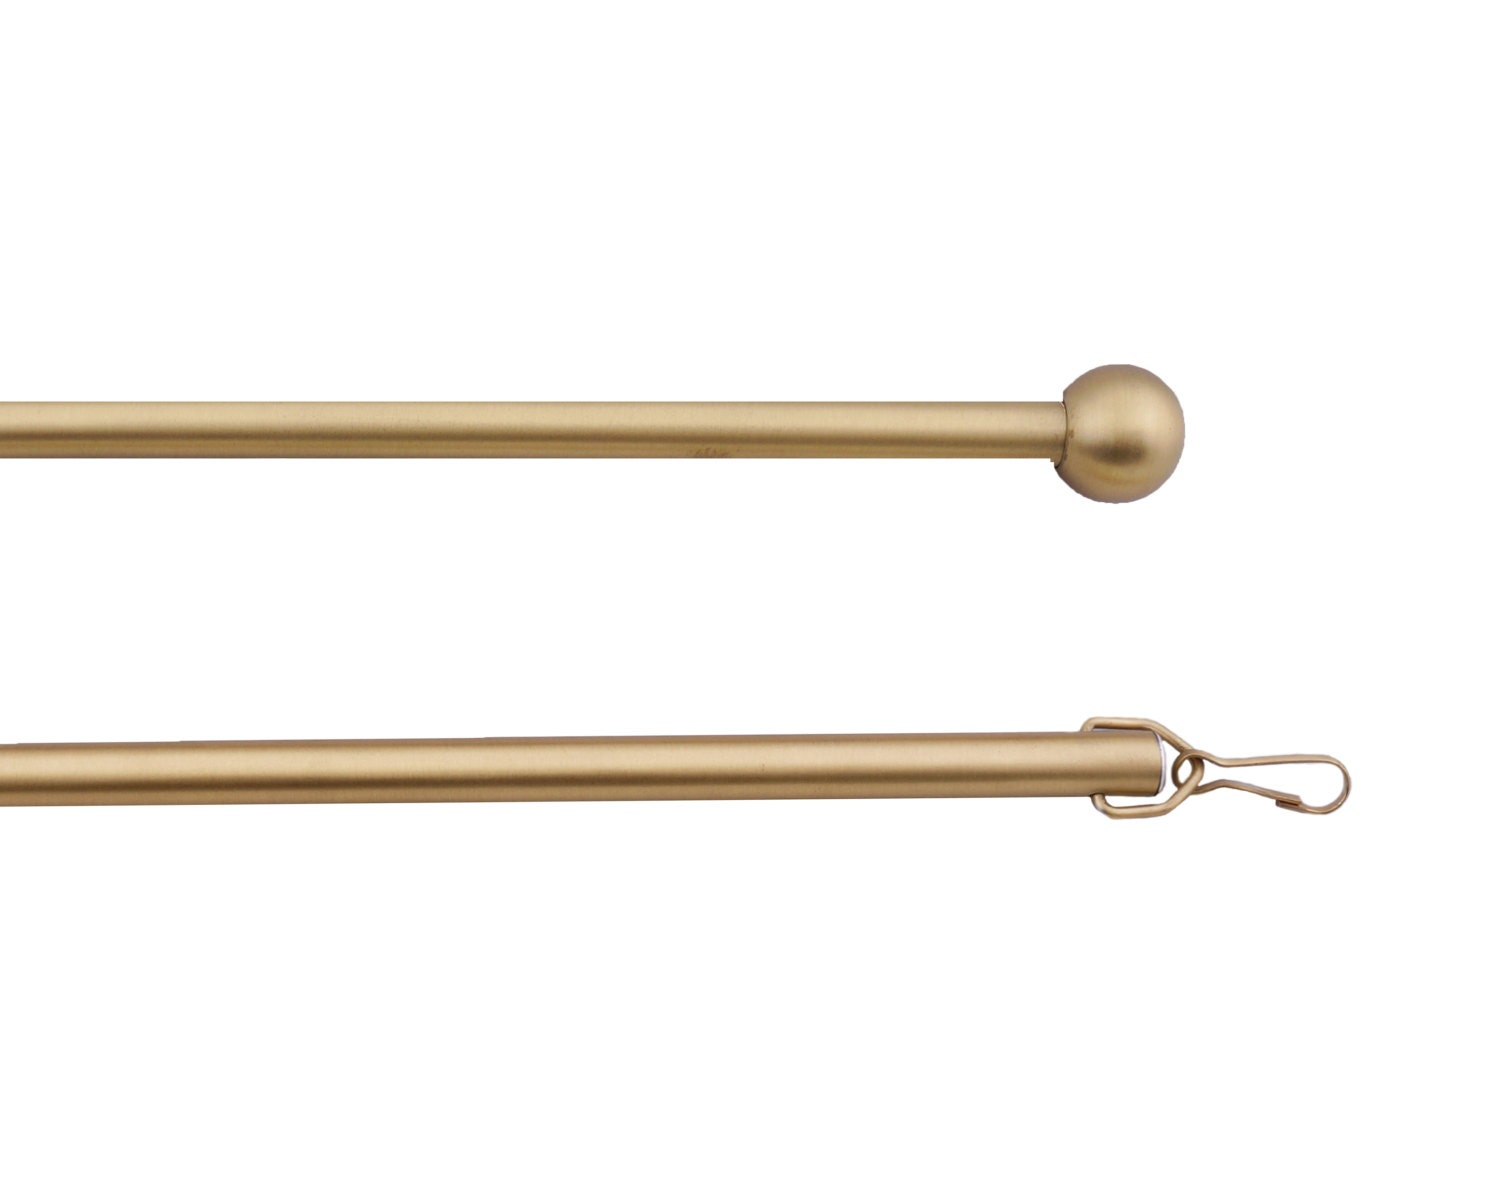 Pull Wand 28 Images 42 Quot Pulls Draw Rods Wands